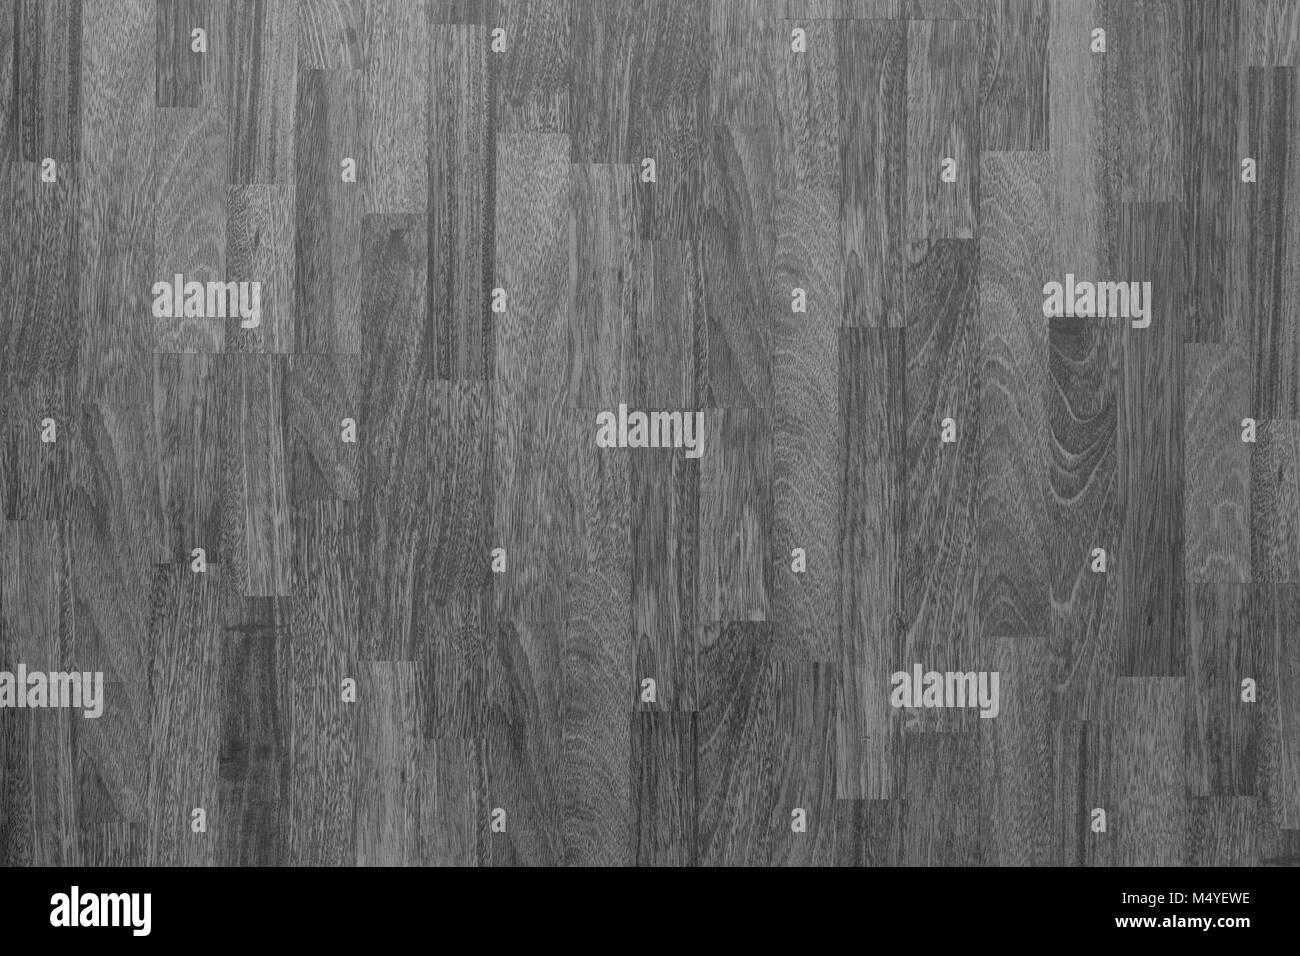 Wood laminate flooring texture background in house in black and white. - Stock Image